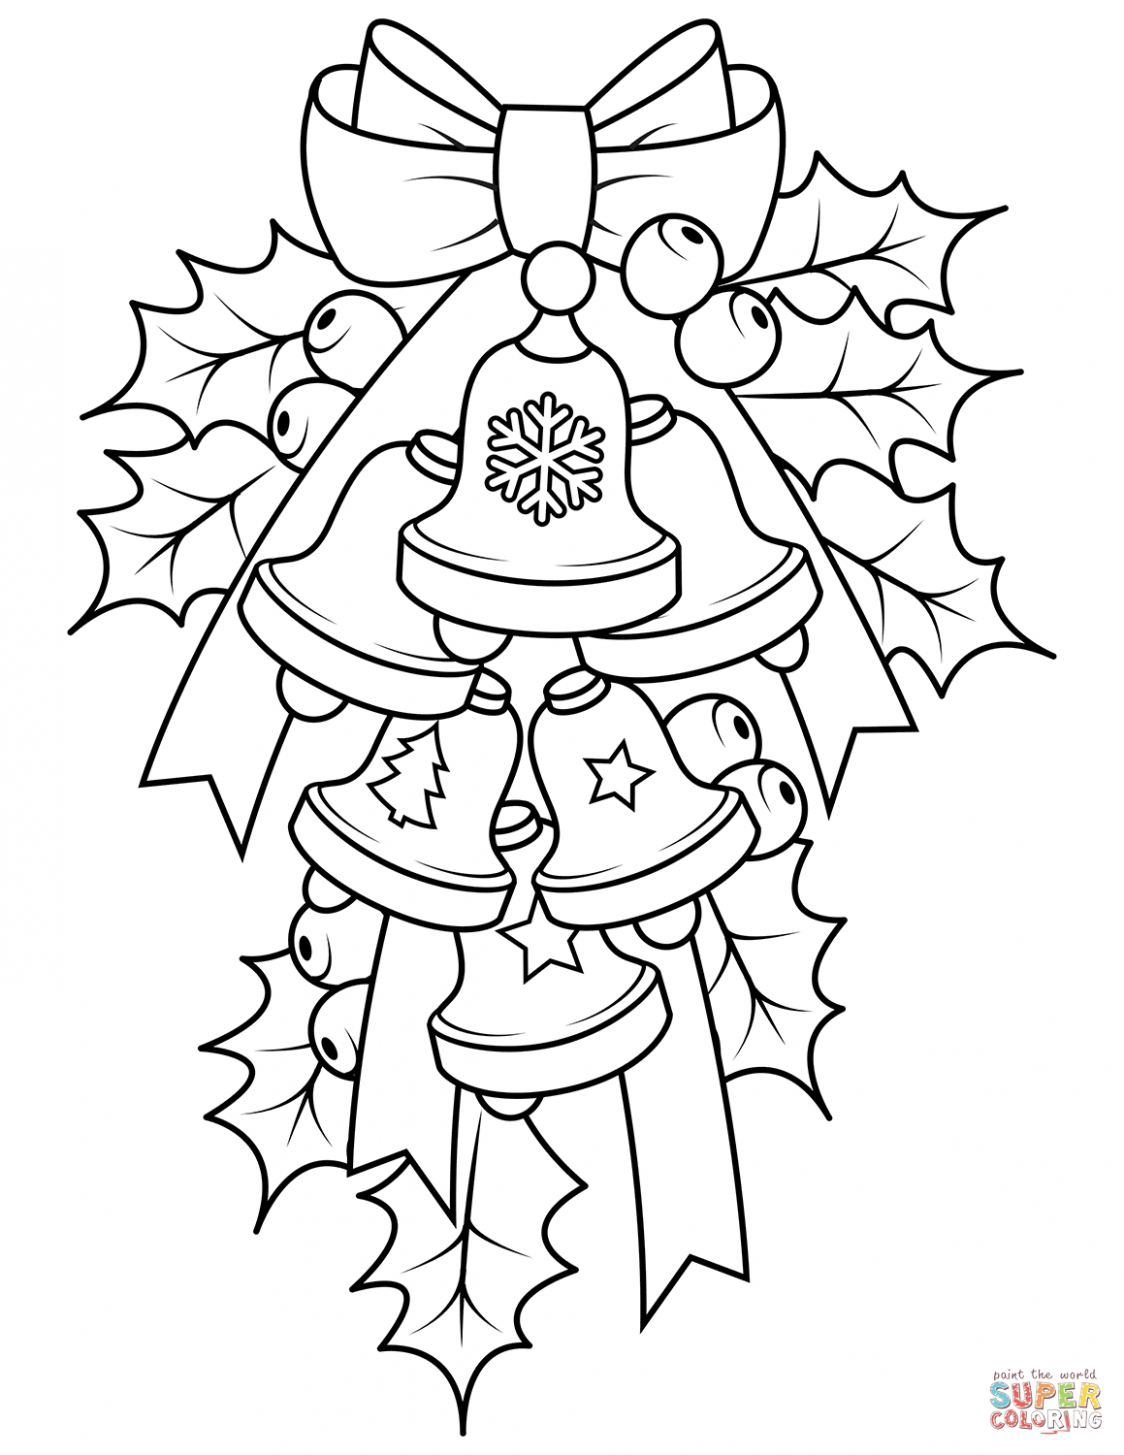 Christmas Bells and Holly coloring page | Free Printable Coloring Pages – Christmas Bell Coloring Page Printable